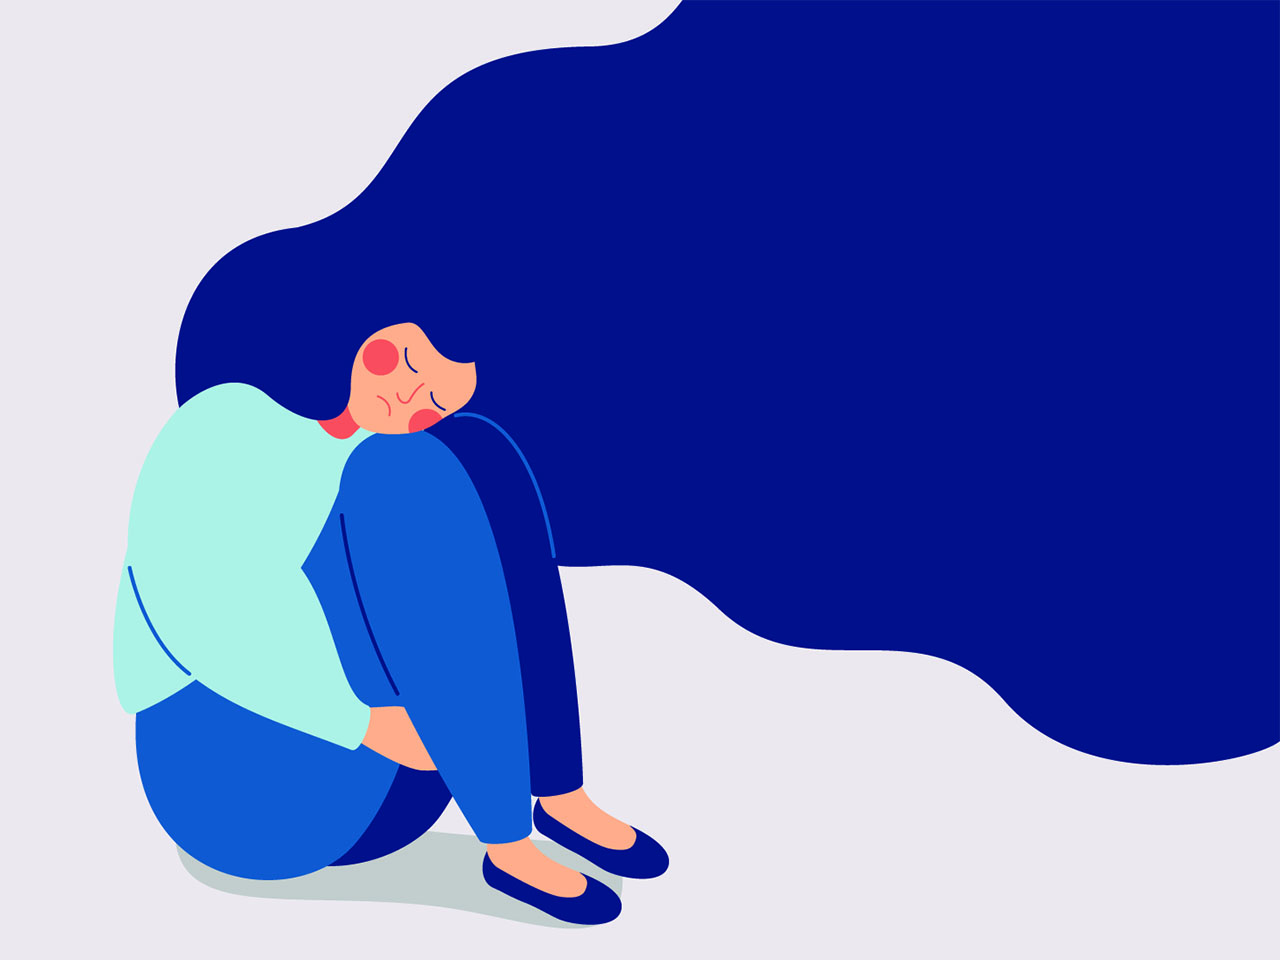 An illustration of a woman hugging her knees with flowing blue hair